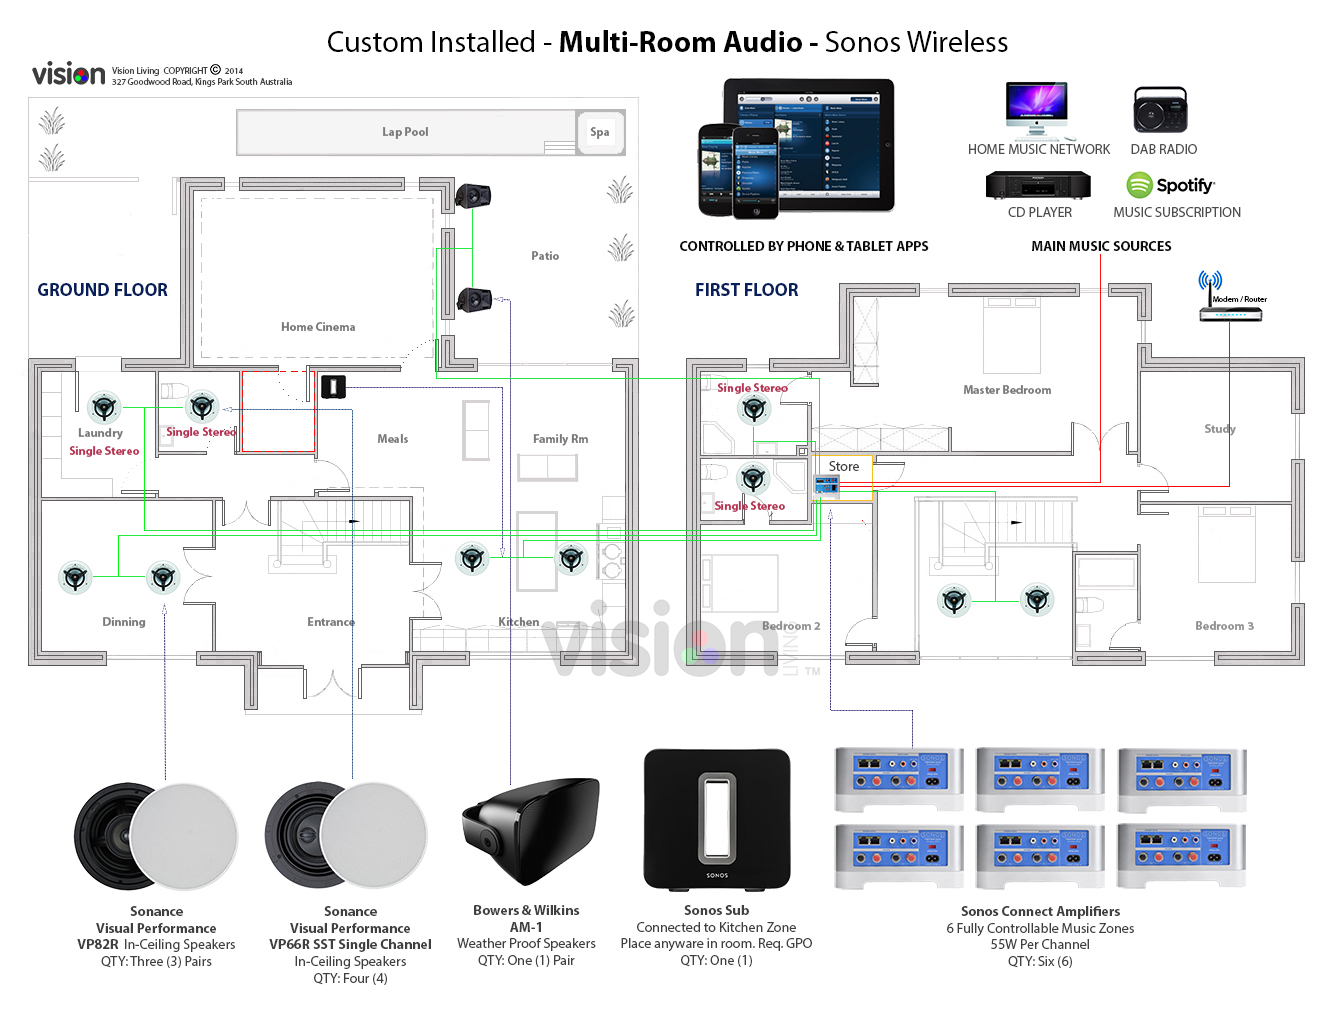 Multi Room Stereo Wiring Diagram Just Wirings Crutchfield Diagrams Tv Multiroom Audio And Video Vision Living Direct Satellite Subwoofer